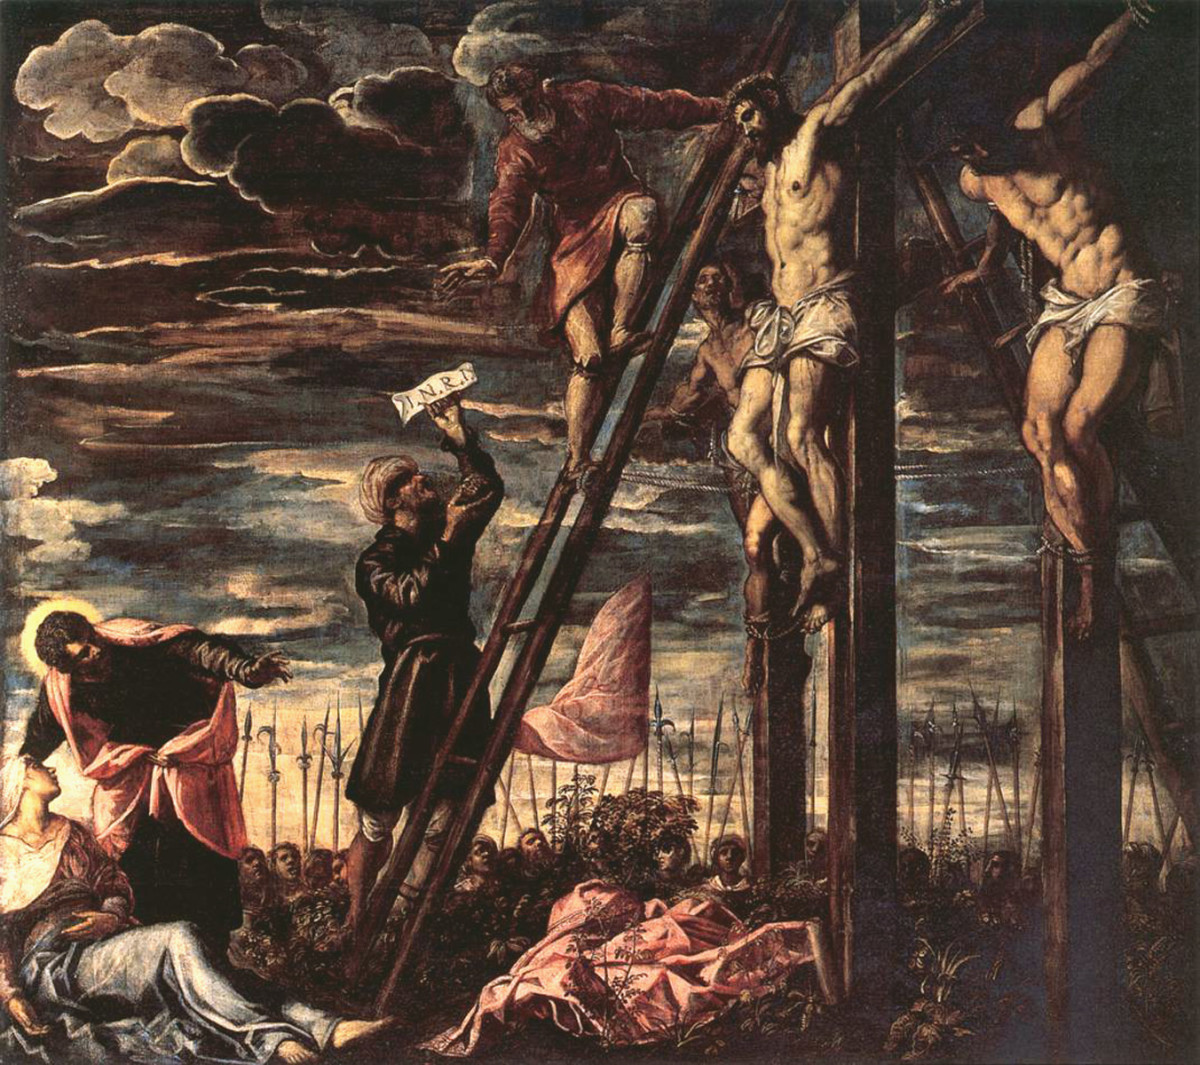 'Crucifixion of Christ' by Tintoretto (1568)